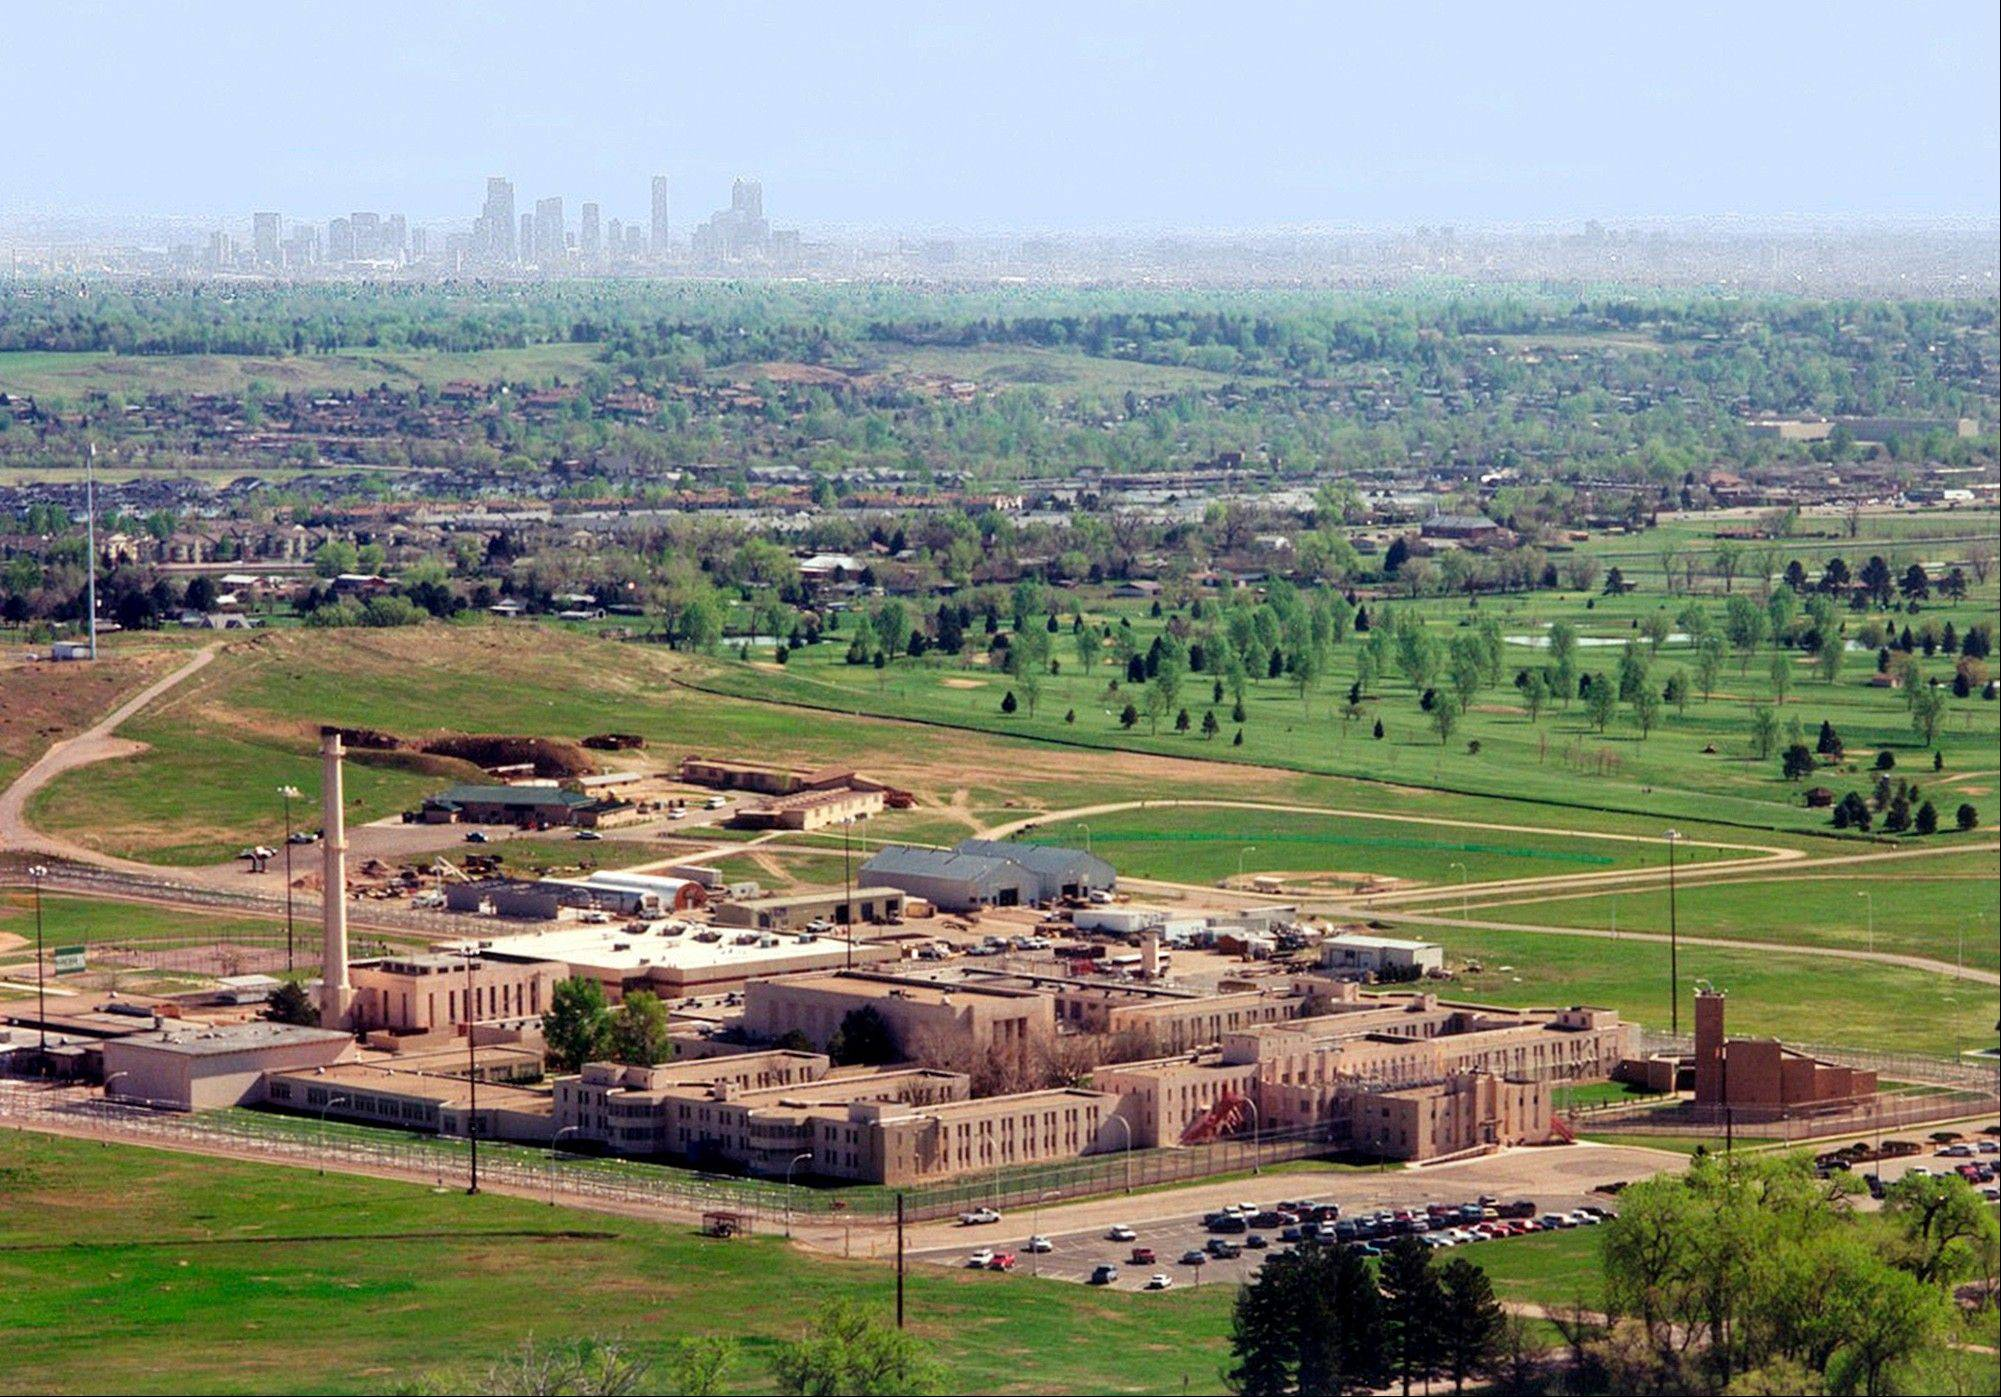 This 2006 photo provided March 7, 2012, by the Federal Bureau of Prisons shows an aerial view of the Federal Correctional Institution Englewood in Littleton, Colo., with the city of Denver seen in the background. Former Illinois Gov. Rod Blagojevich, who was convicted on multiple corruption counts, is expected to be reporting to this facility March 15.